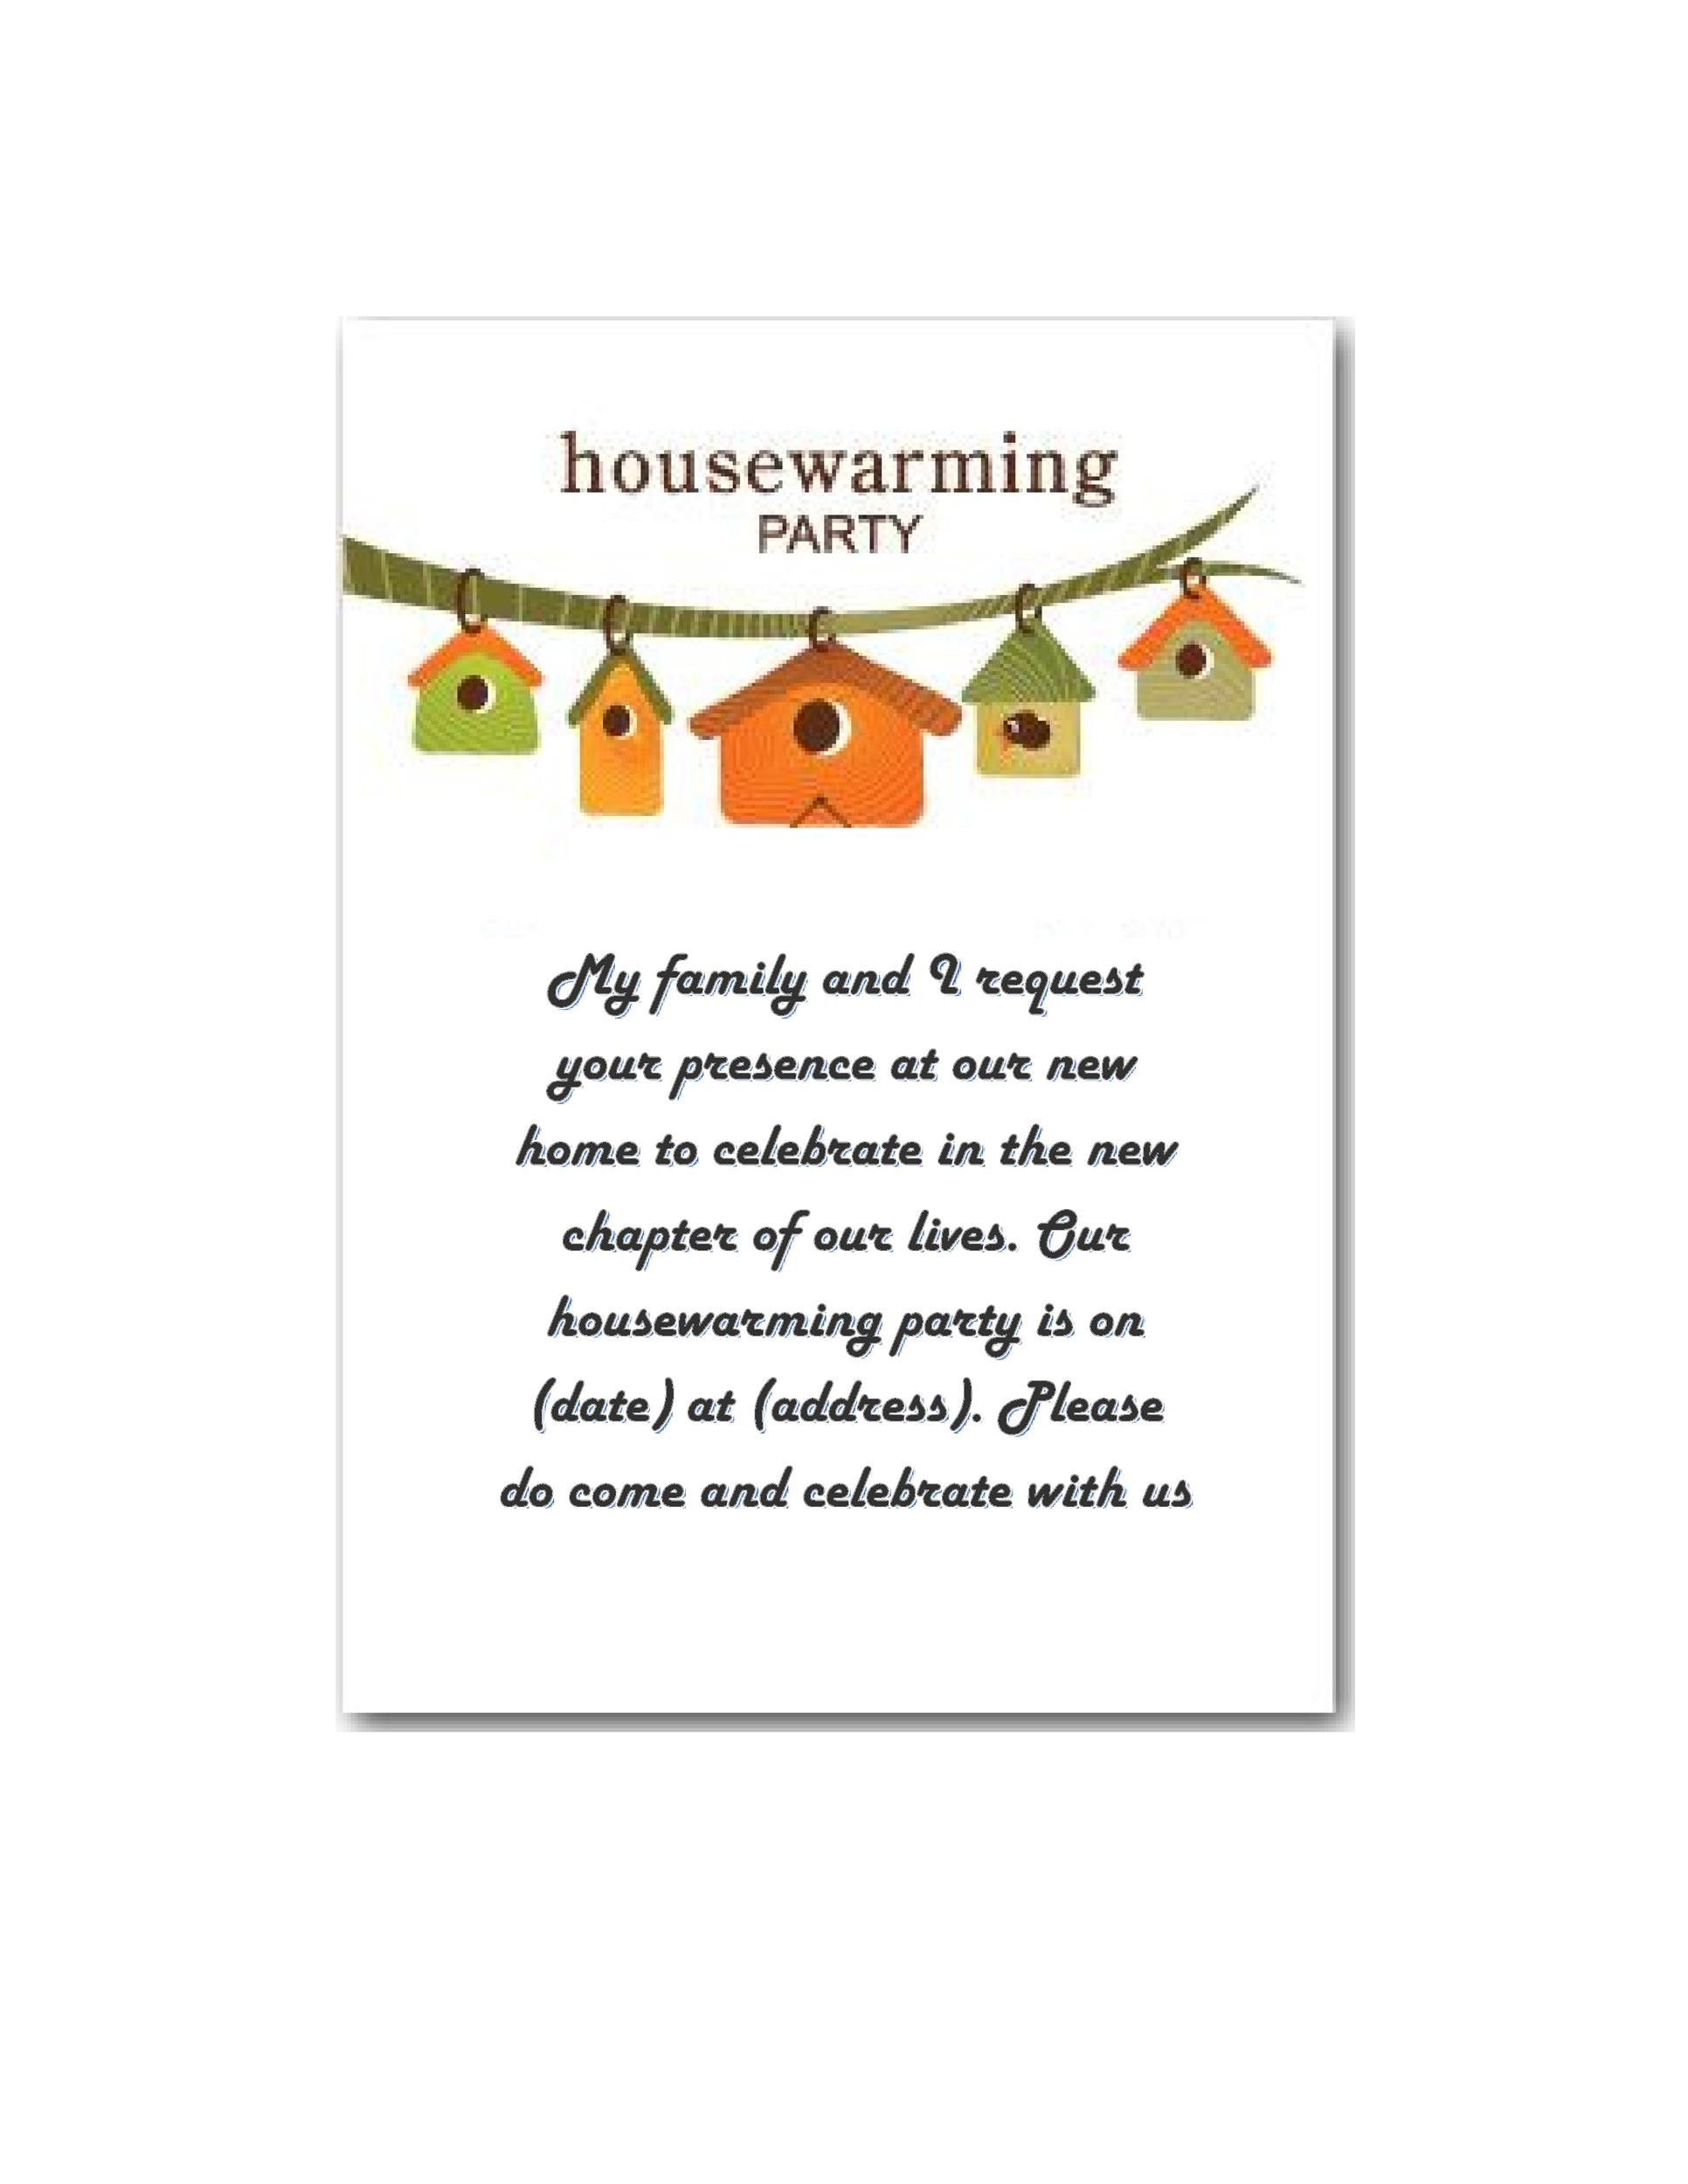 Housewarming party invitations template vatozozdevelopment housewarming party invitations template stopboris